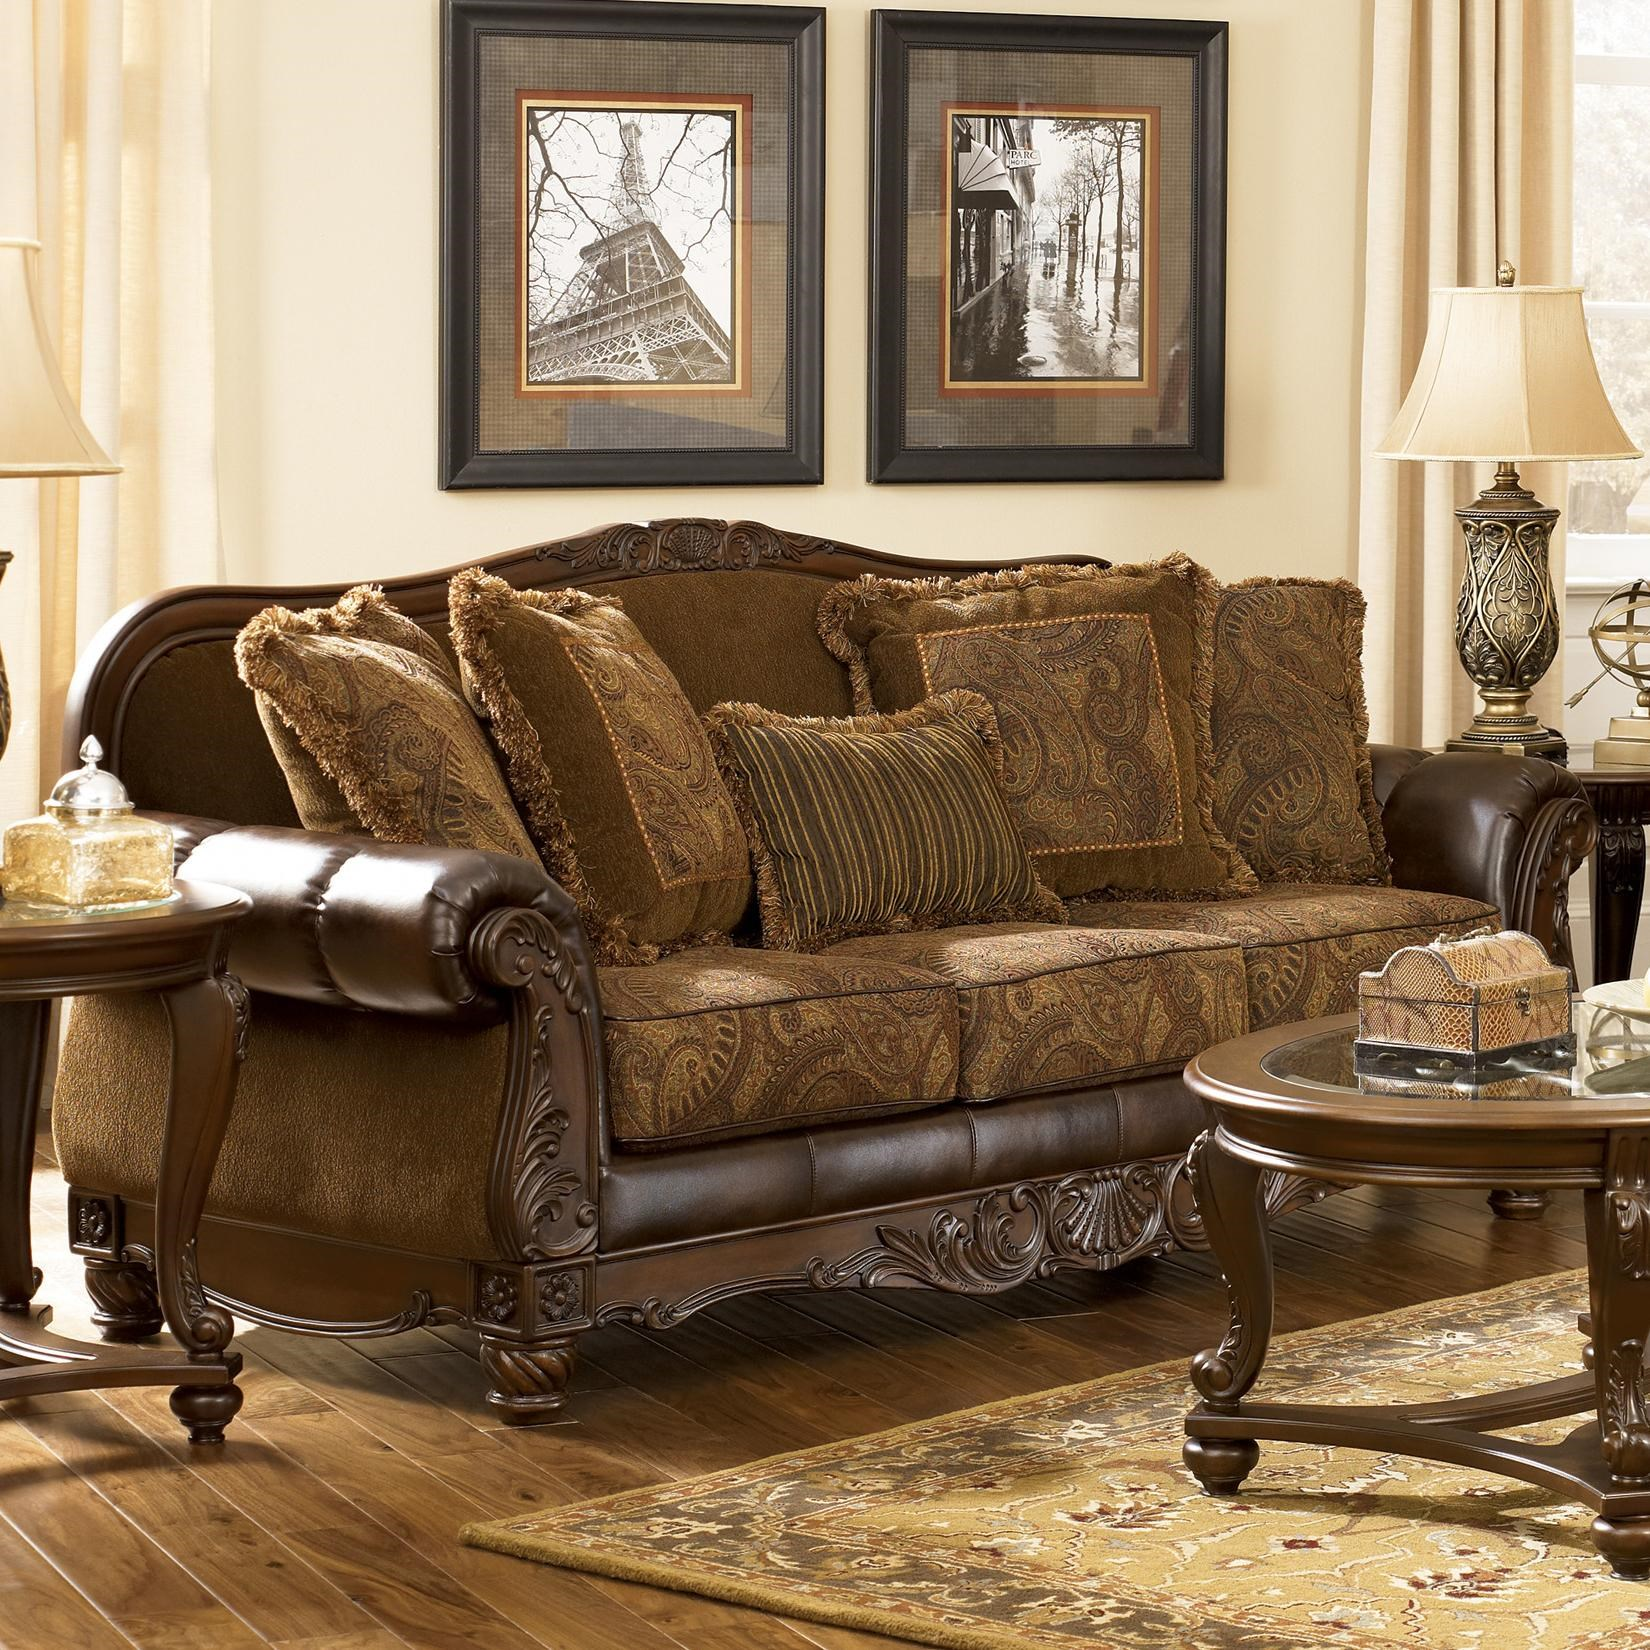 Signature Design By Ashley Fresco DuraBlend   Antique Traditional  Stationary Sofa With Rolled Arms